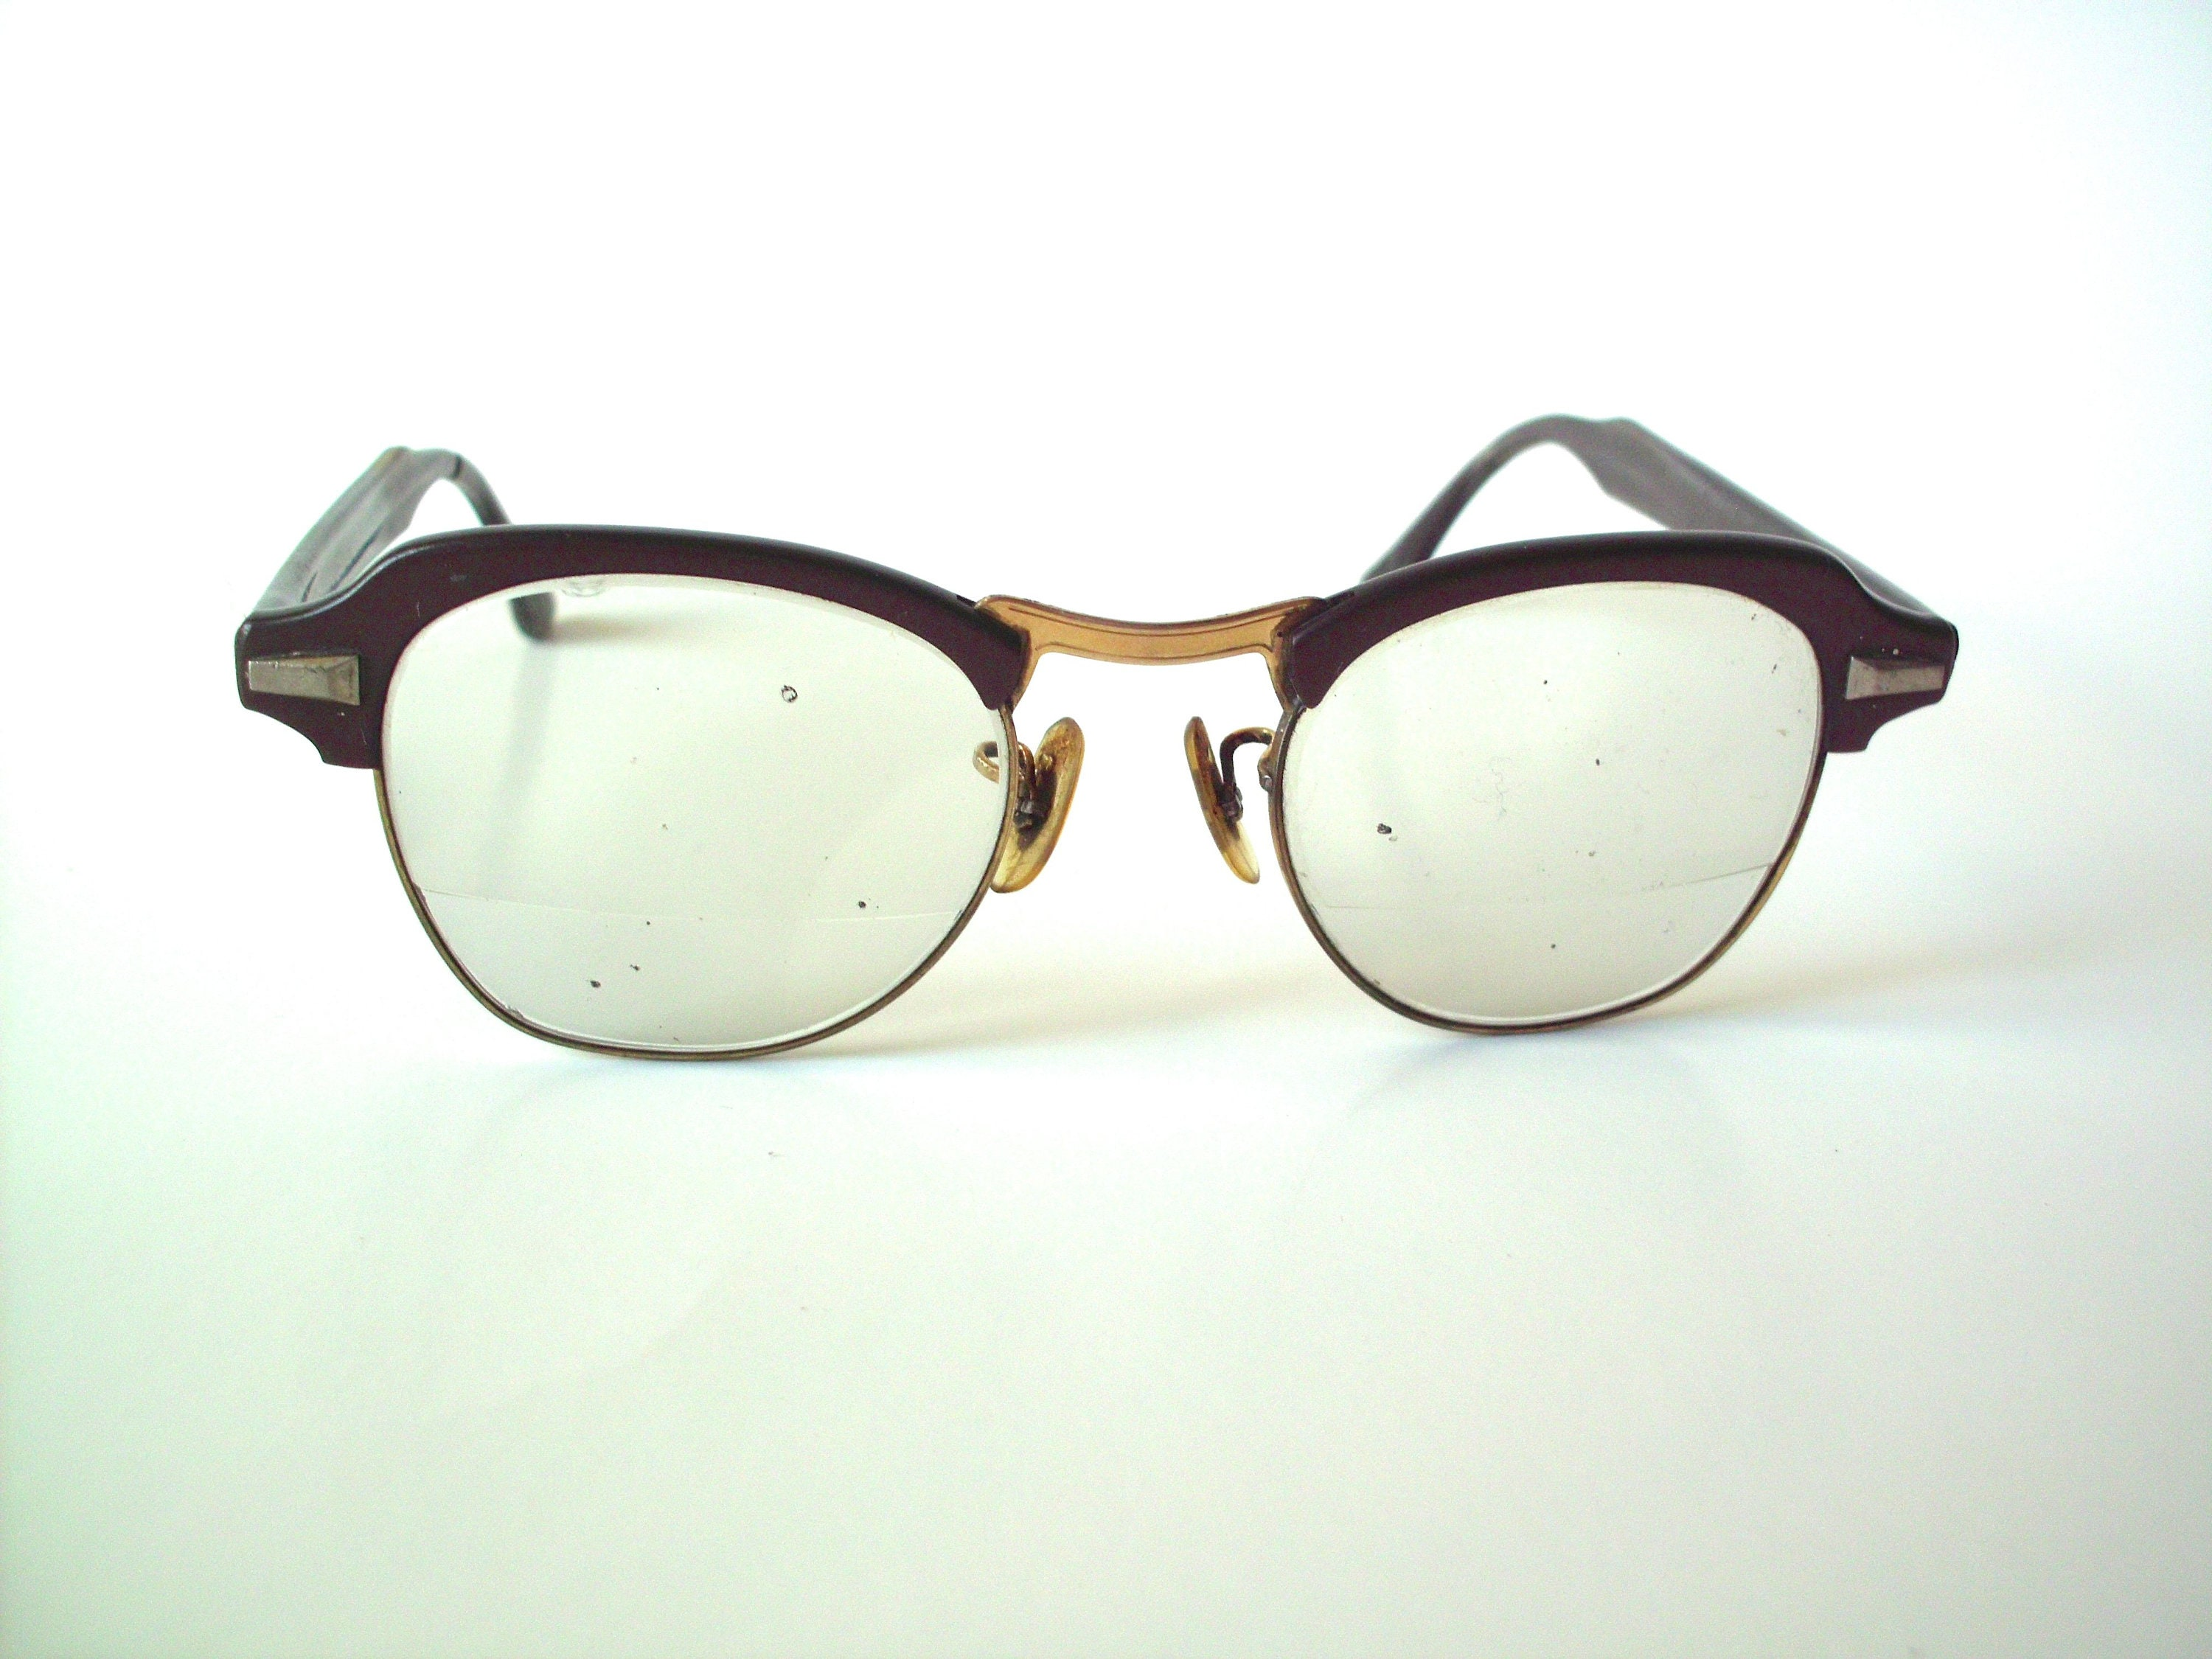 990f677b6ee Vintage bausch lomb bi focal safety glasses with etsy jpg 3000x2250 Horn  rimmed chic safety glasses